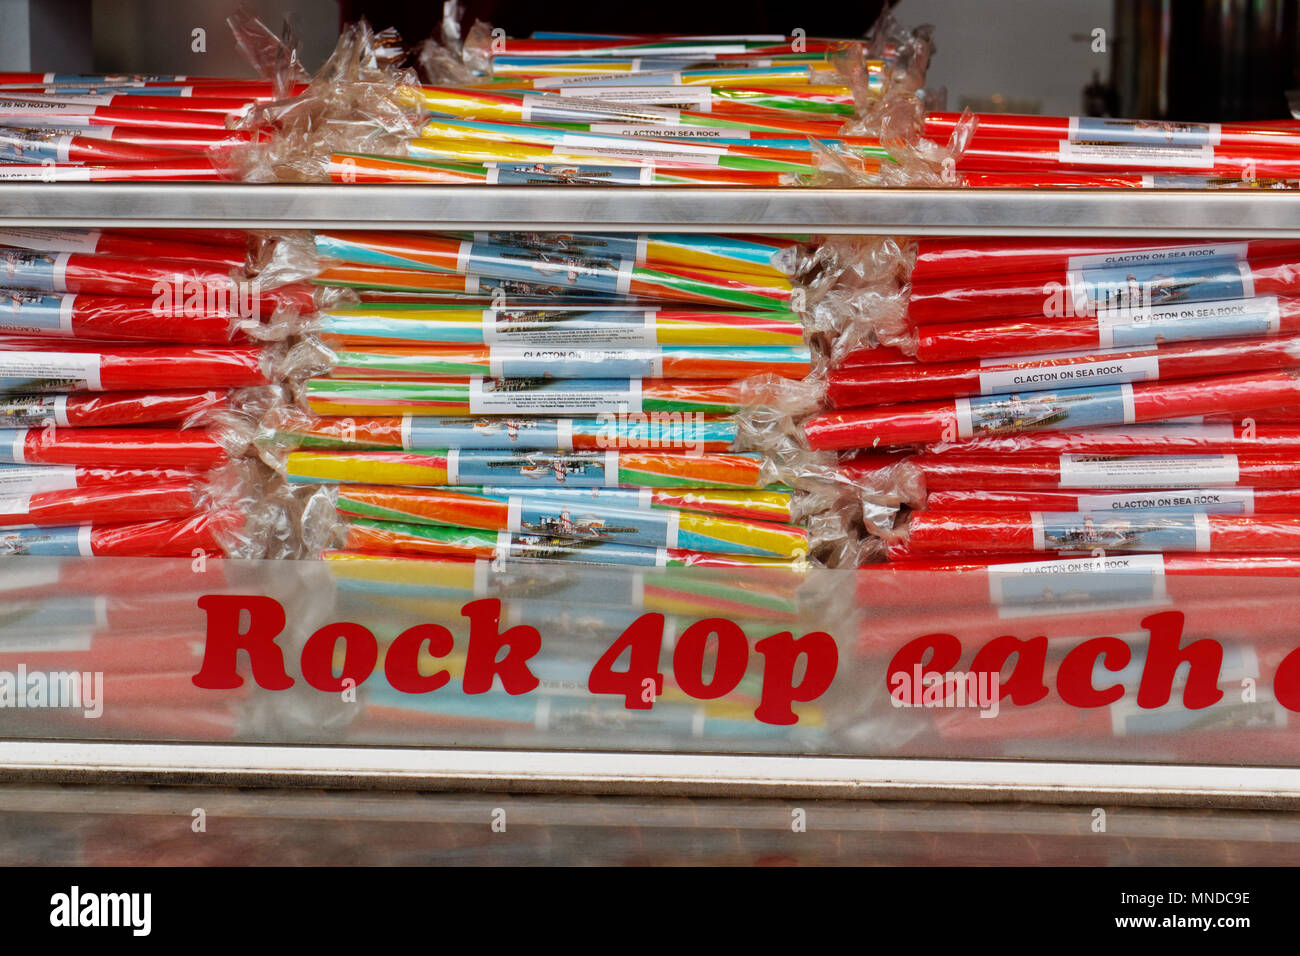 Sticks of seaside rock from Clacton-on-Sea in Essex, England - Stock Image